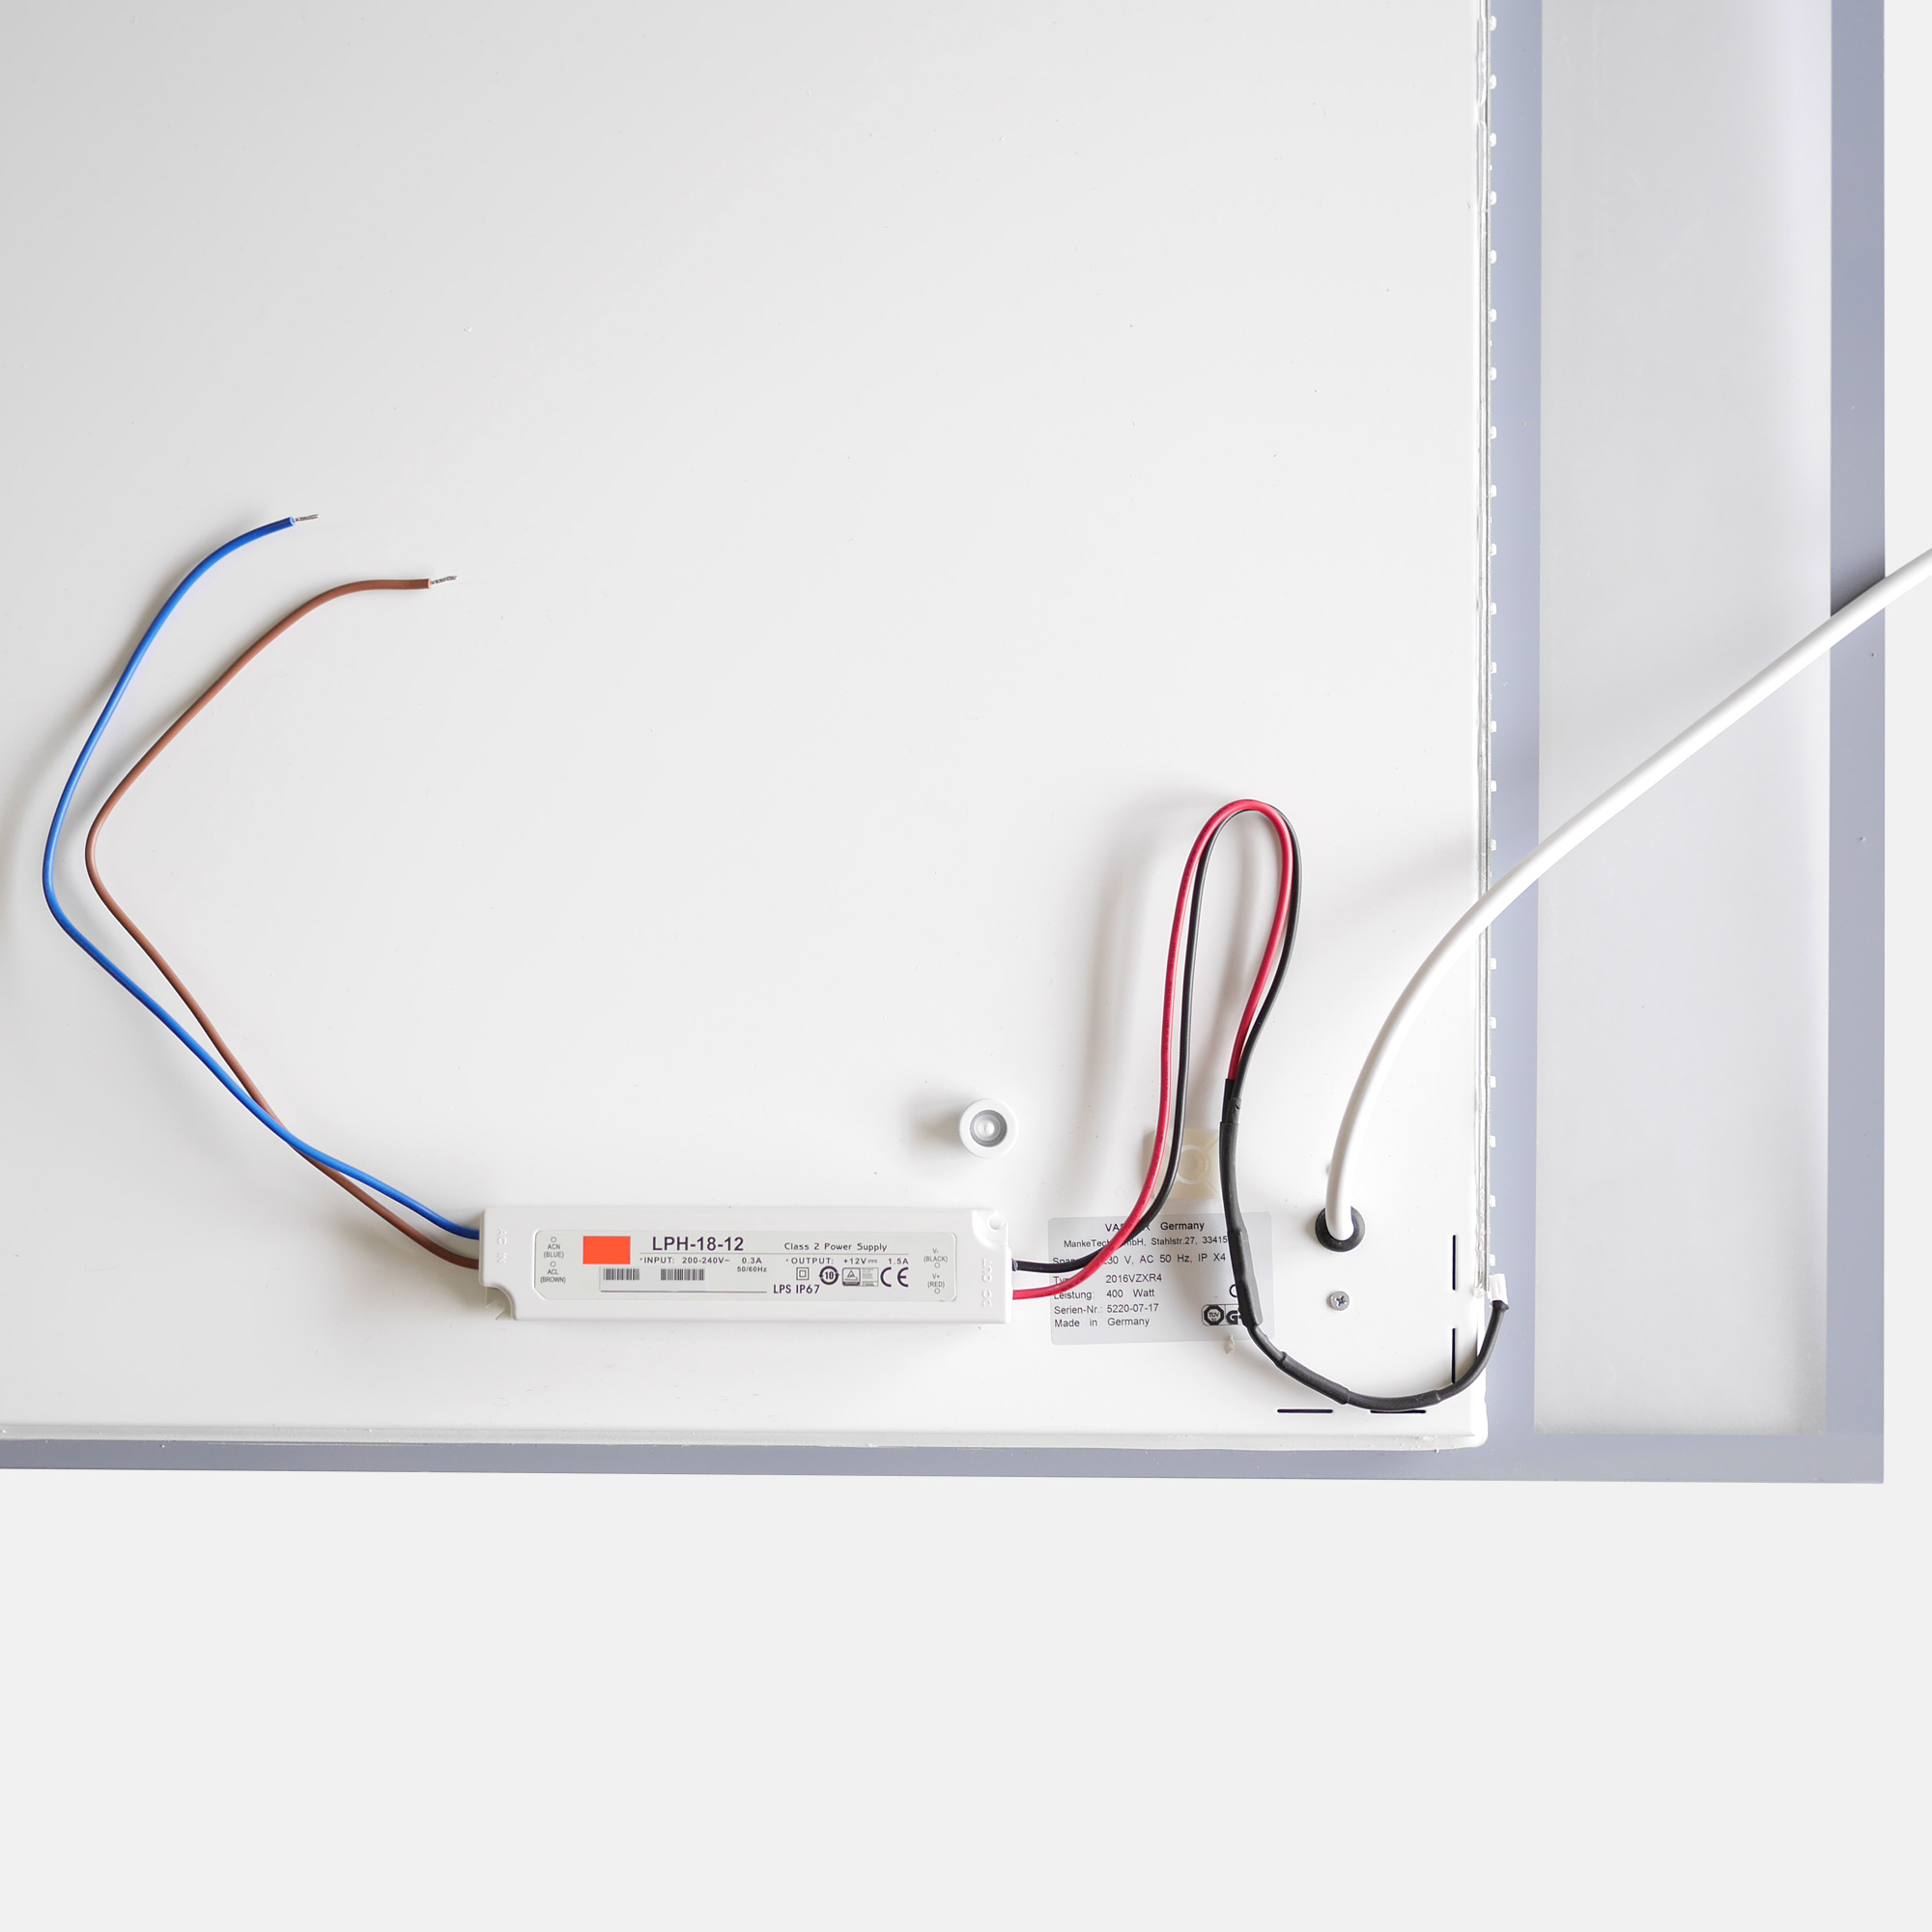 Mirror heating panel power connections for heat and light control